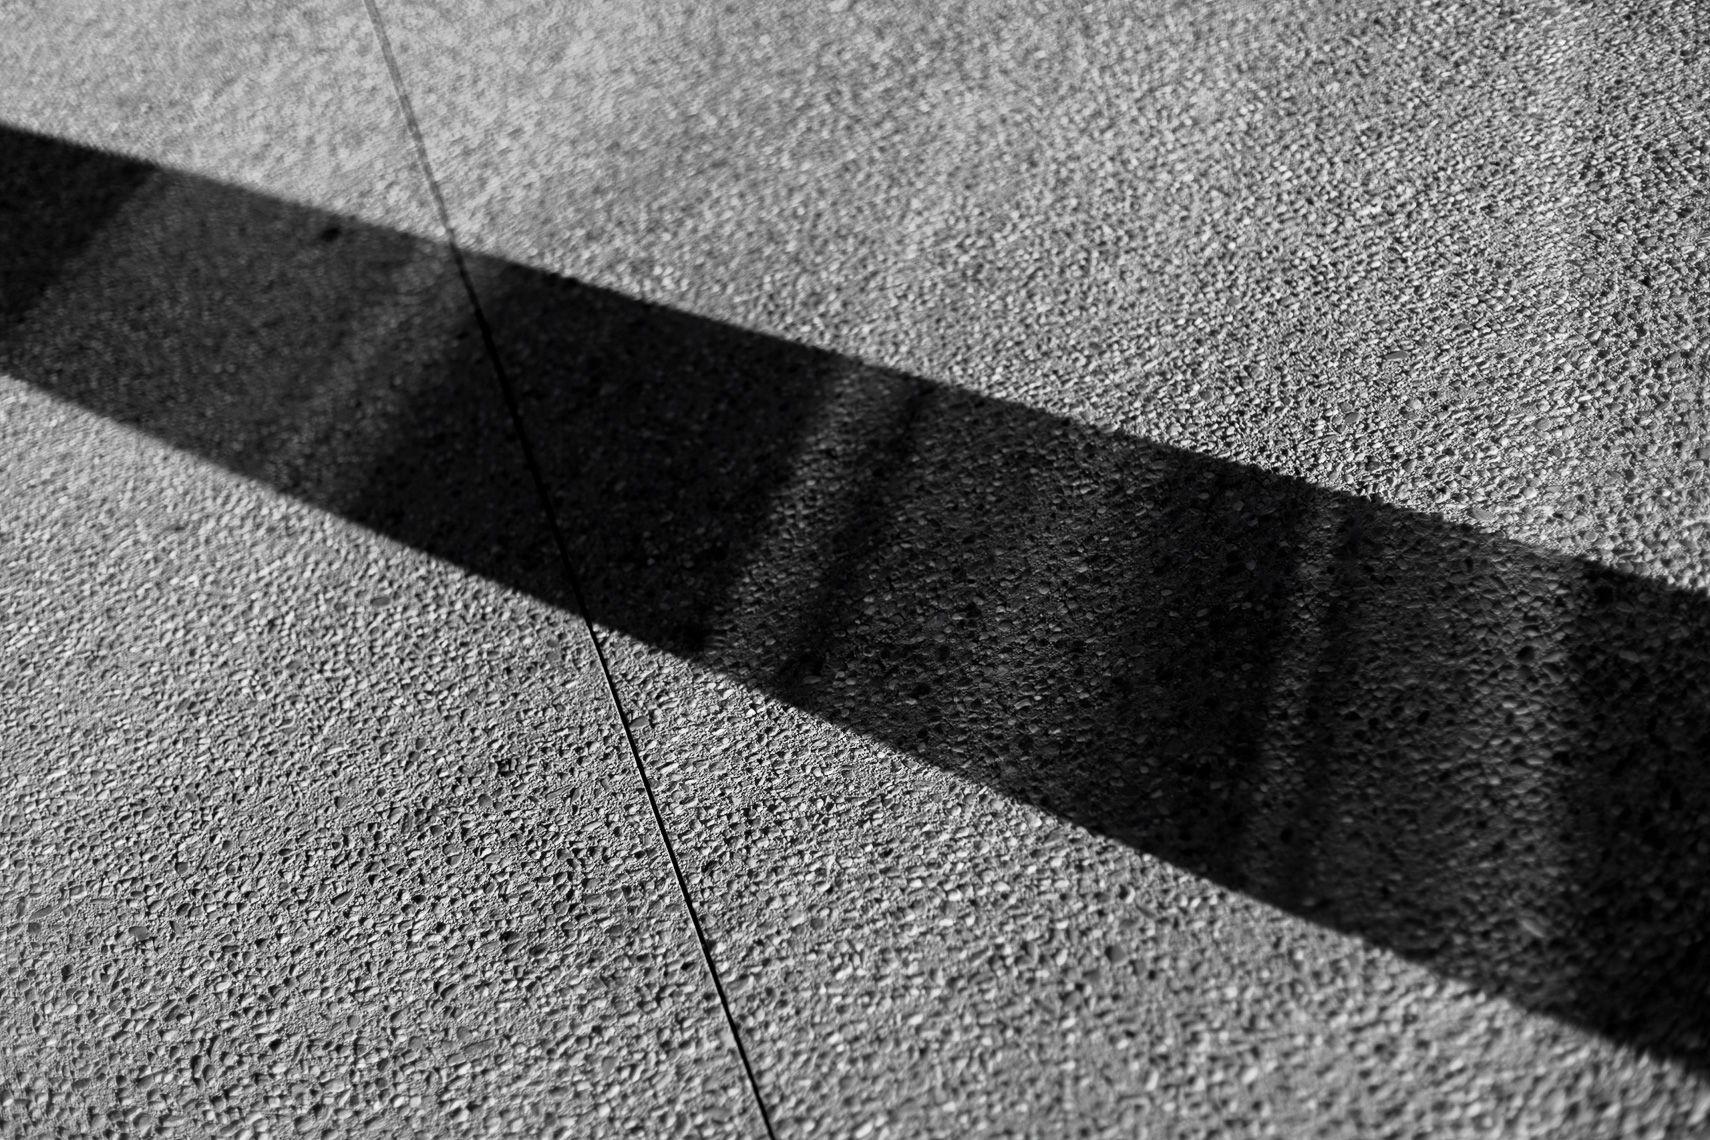 Architectural Shadows on concrete by Paul Green Photographer 2